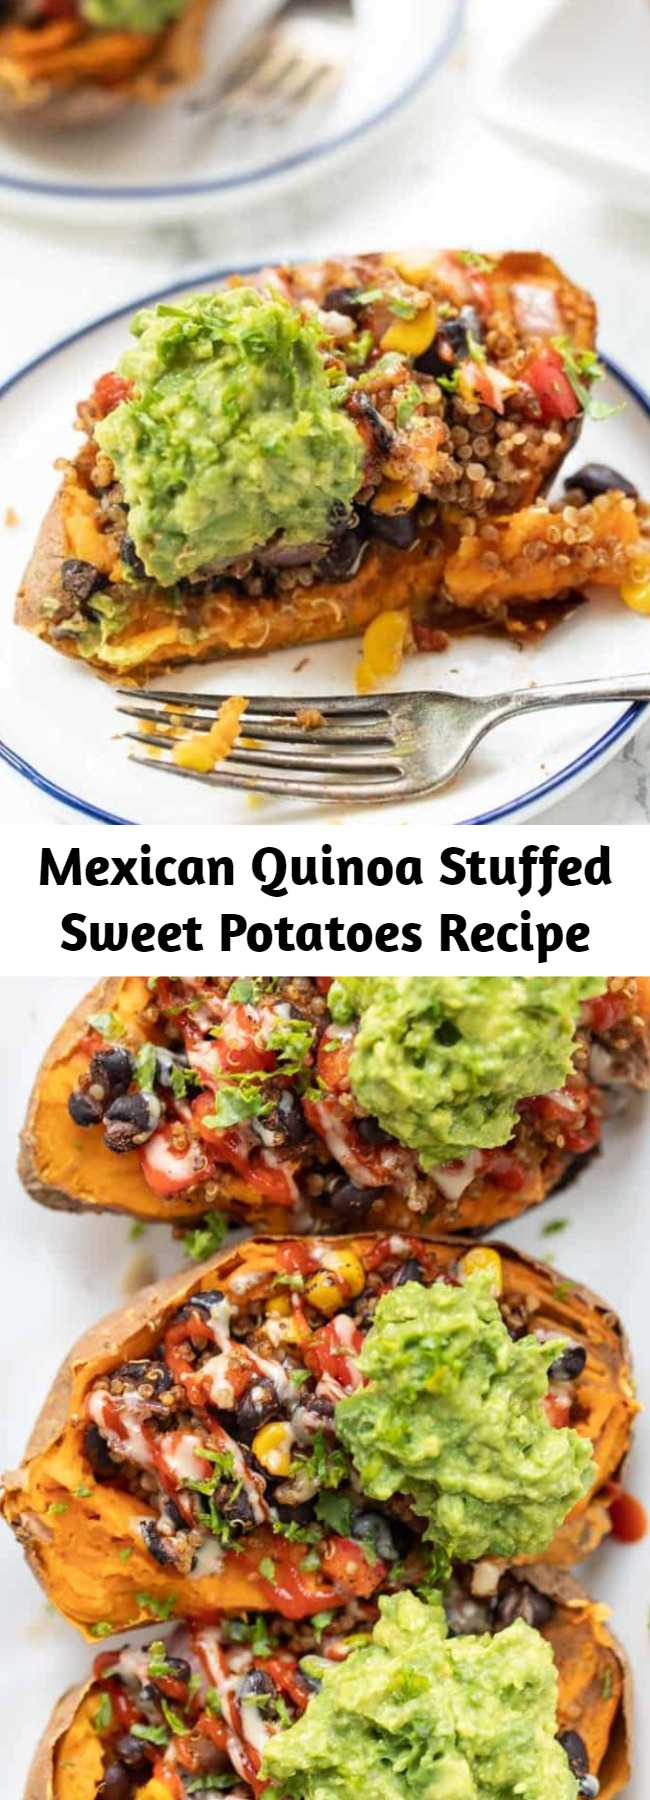 Mexican Quinoa Stuffed Sweet Potatoes Recipe - These Mexican Quinoa STUFFED Sweet Potatoes are the ultimate plant-based meal! Packed with fiber and protein, they're filling, tasty and easy to make! Easy, healthy and so delicious. Stuffed with black beans, quinoa, guacamole, and more healthy ingredients! #stuffedsweetpotatoes #mexicanquinoa #quinoa #quinoarecipe #vegandinner